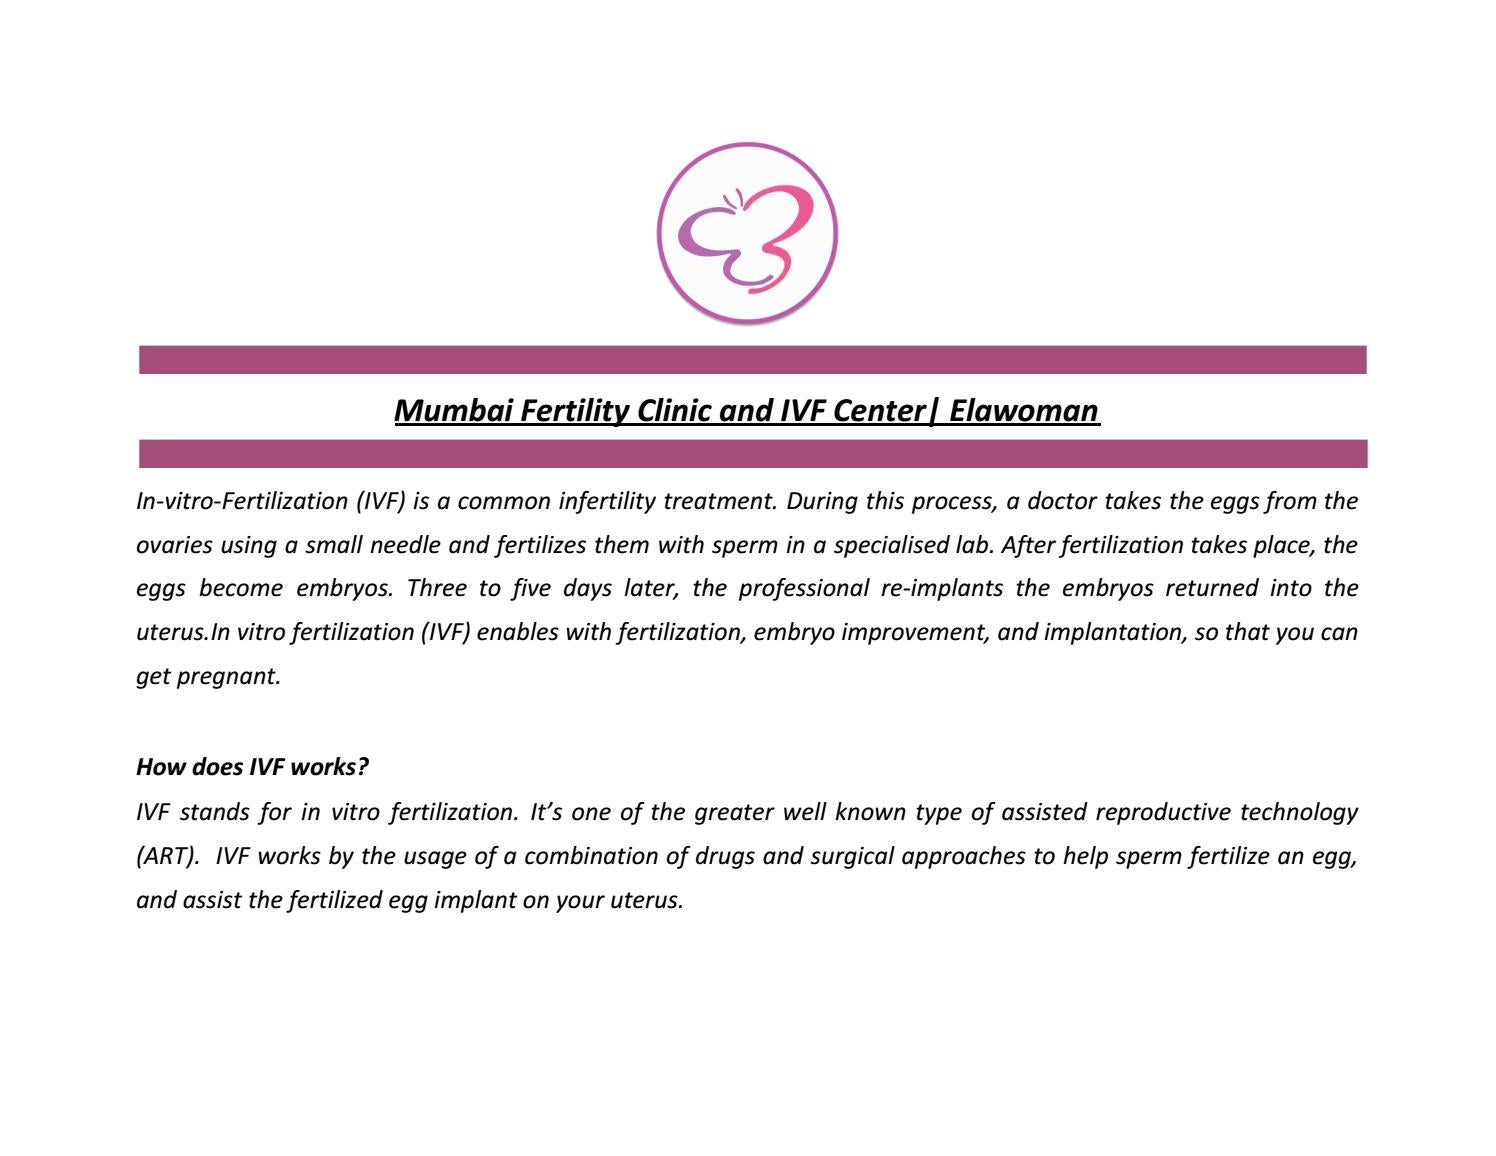 Mumbai Fertility Clinic and IVF Center | Elawoman by